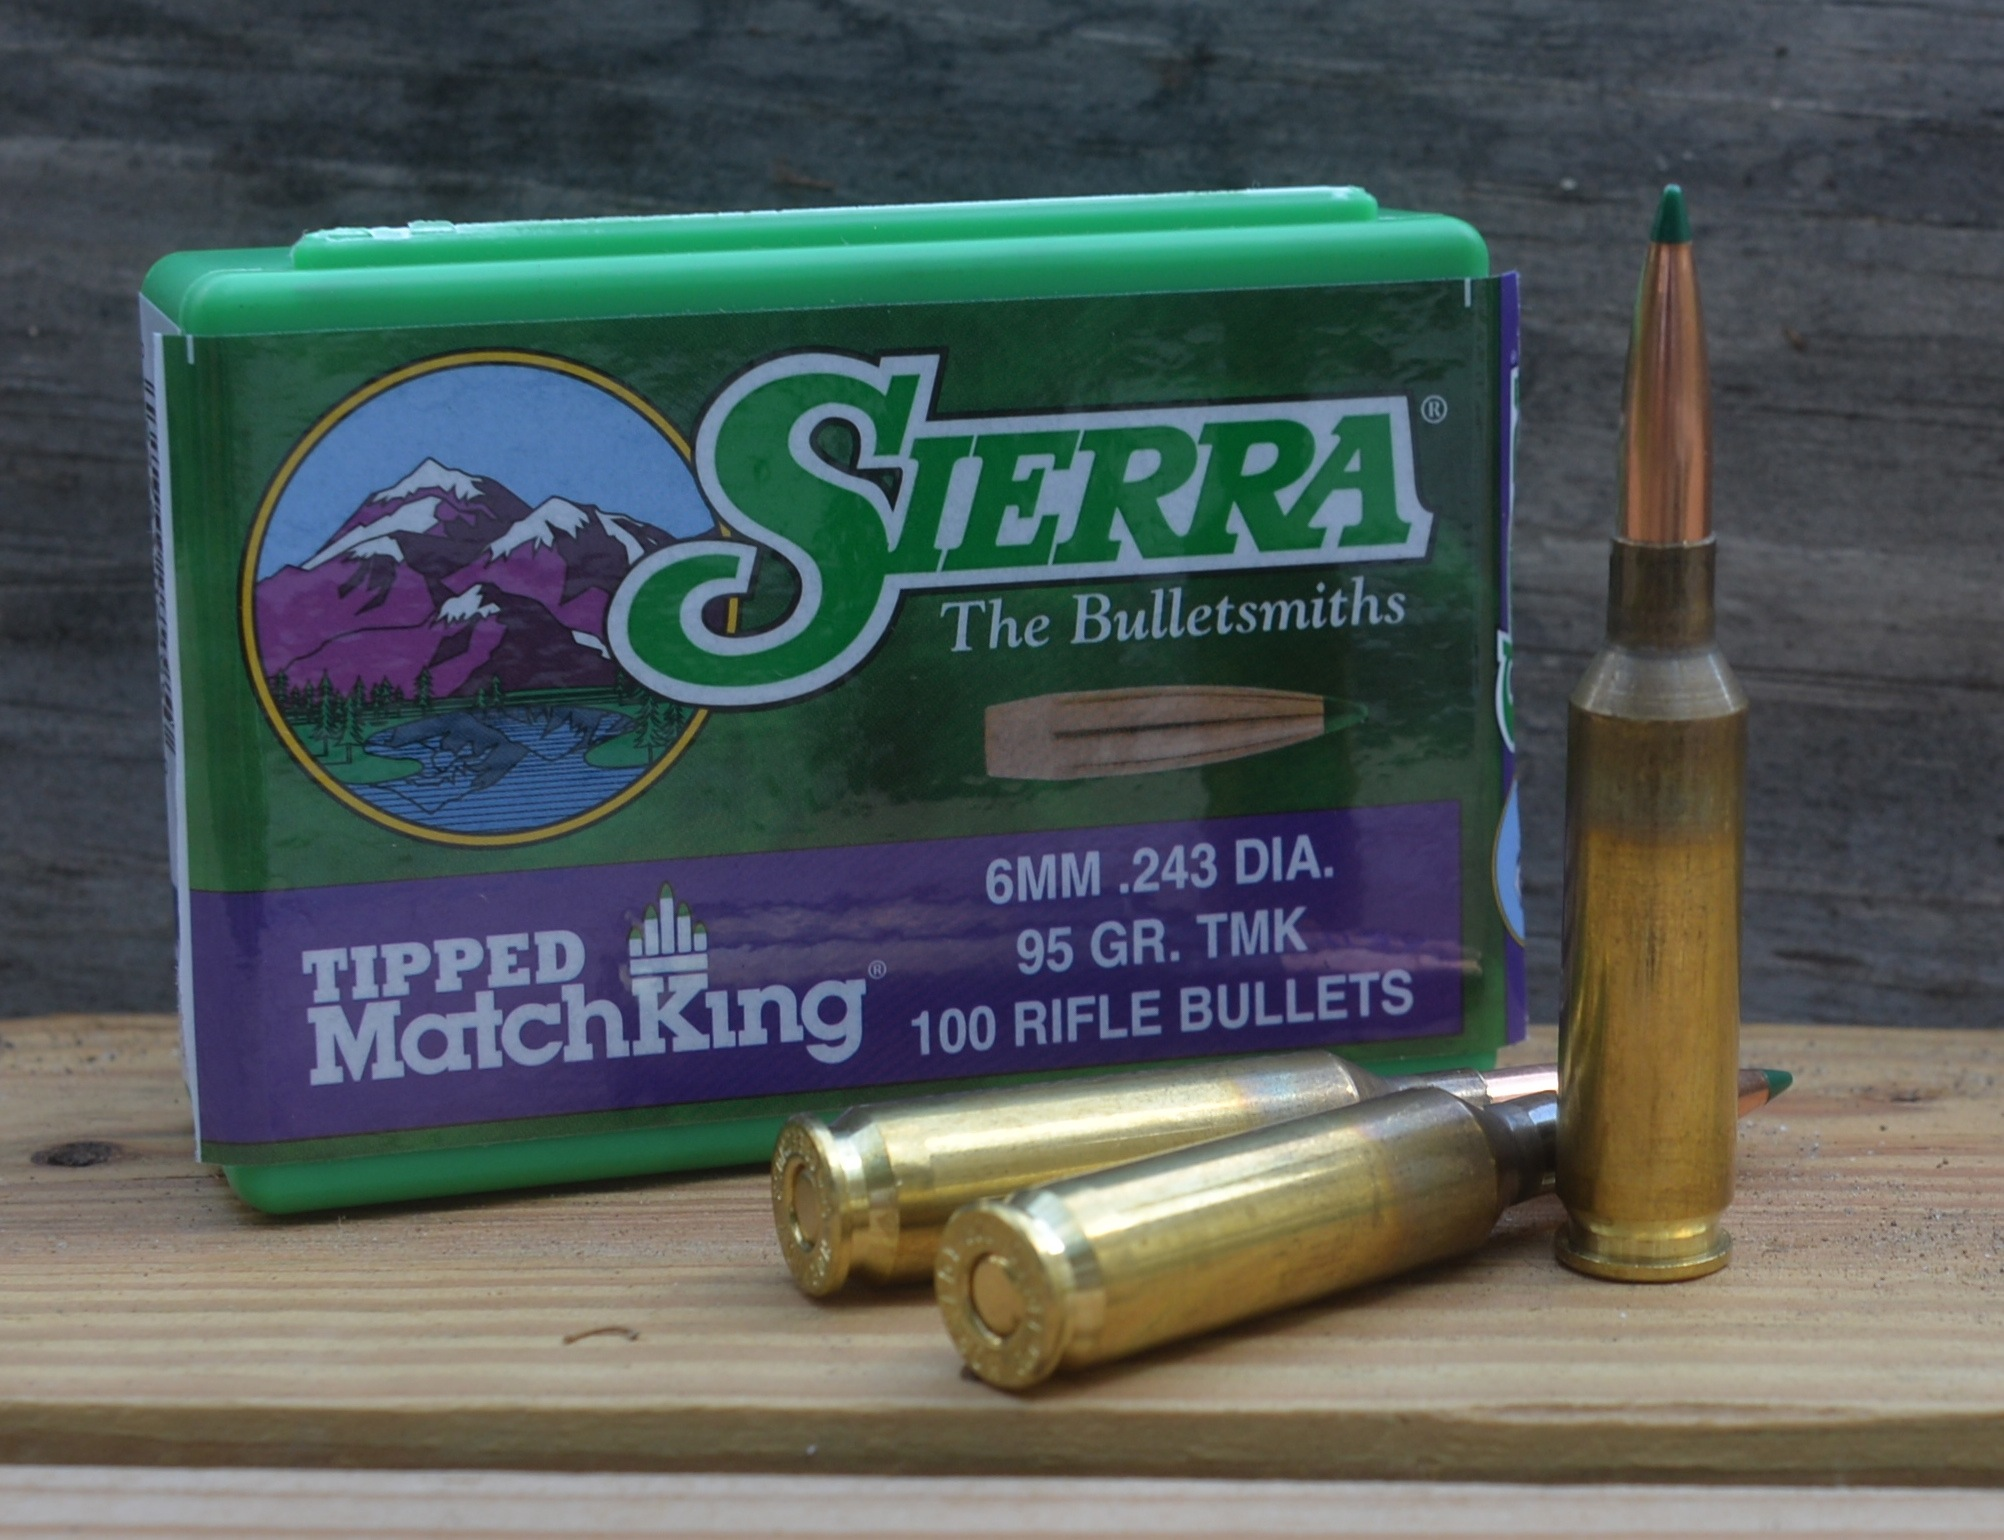 6 creed 95 TMK cartridges with box